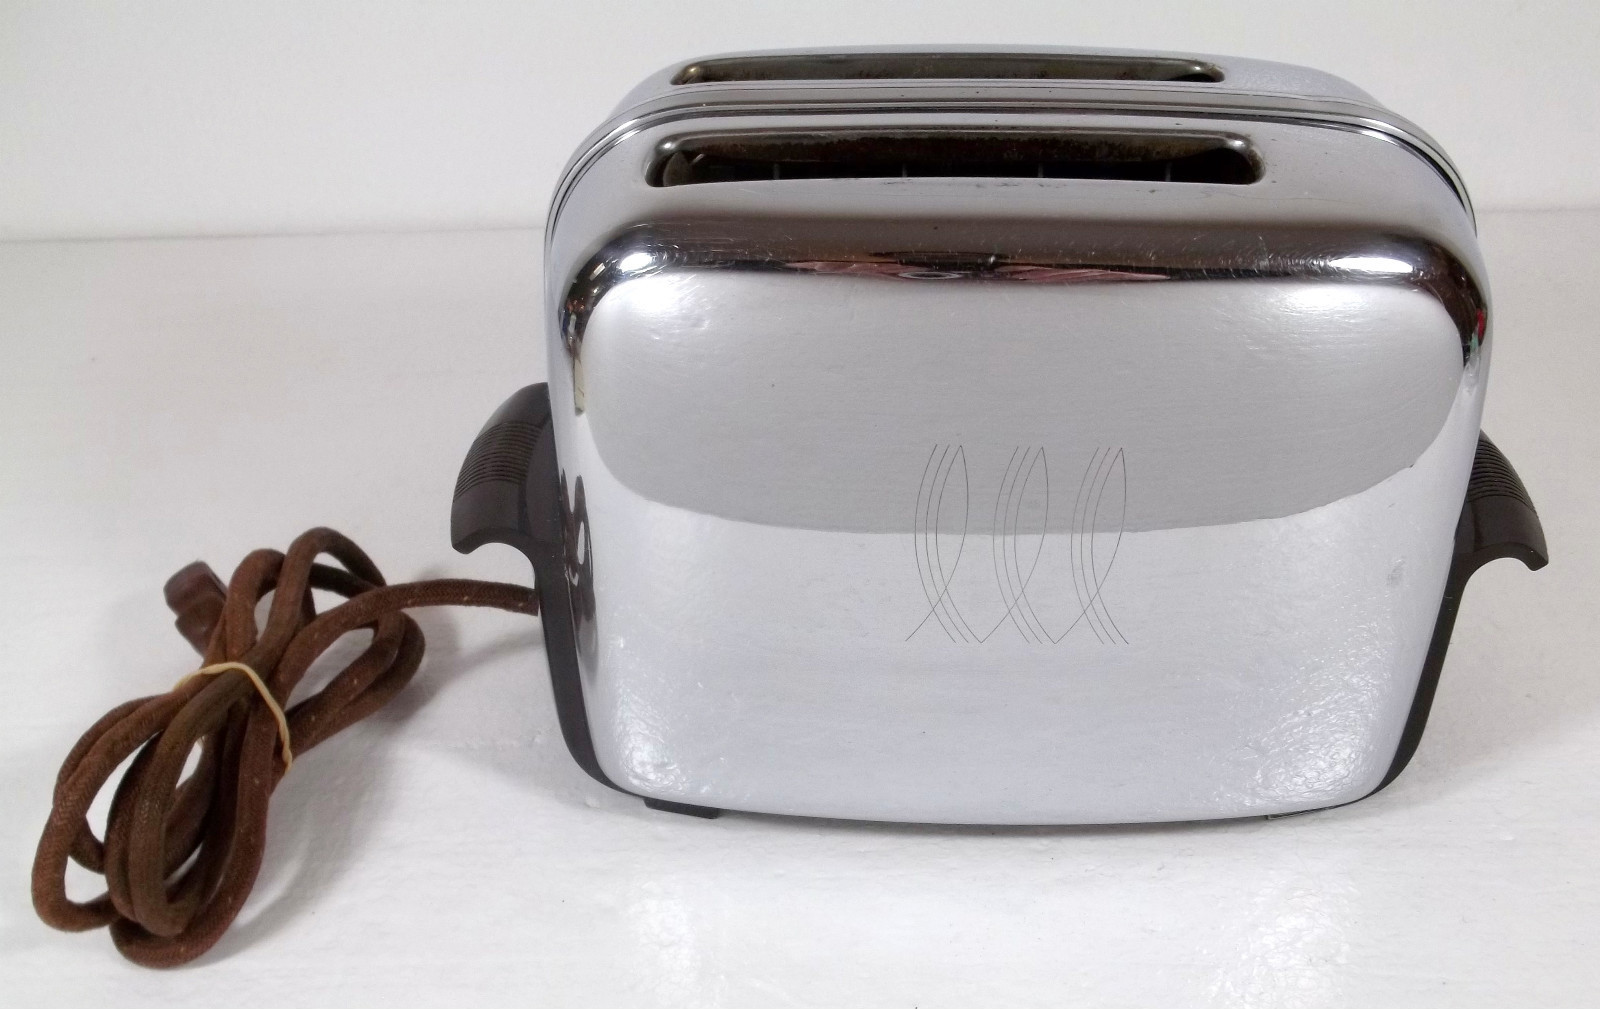 Vintage Toastmaster Automatic Pop Up Toaster The History